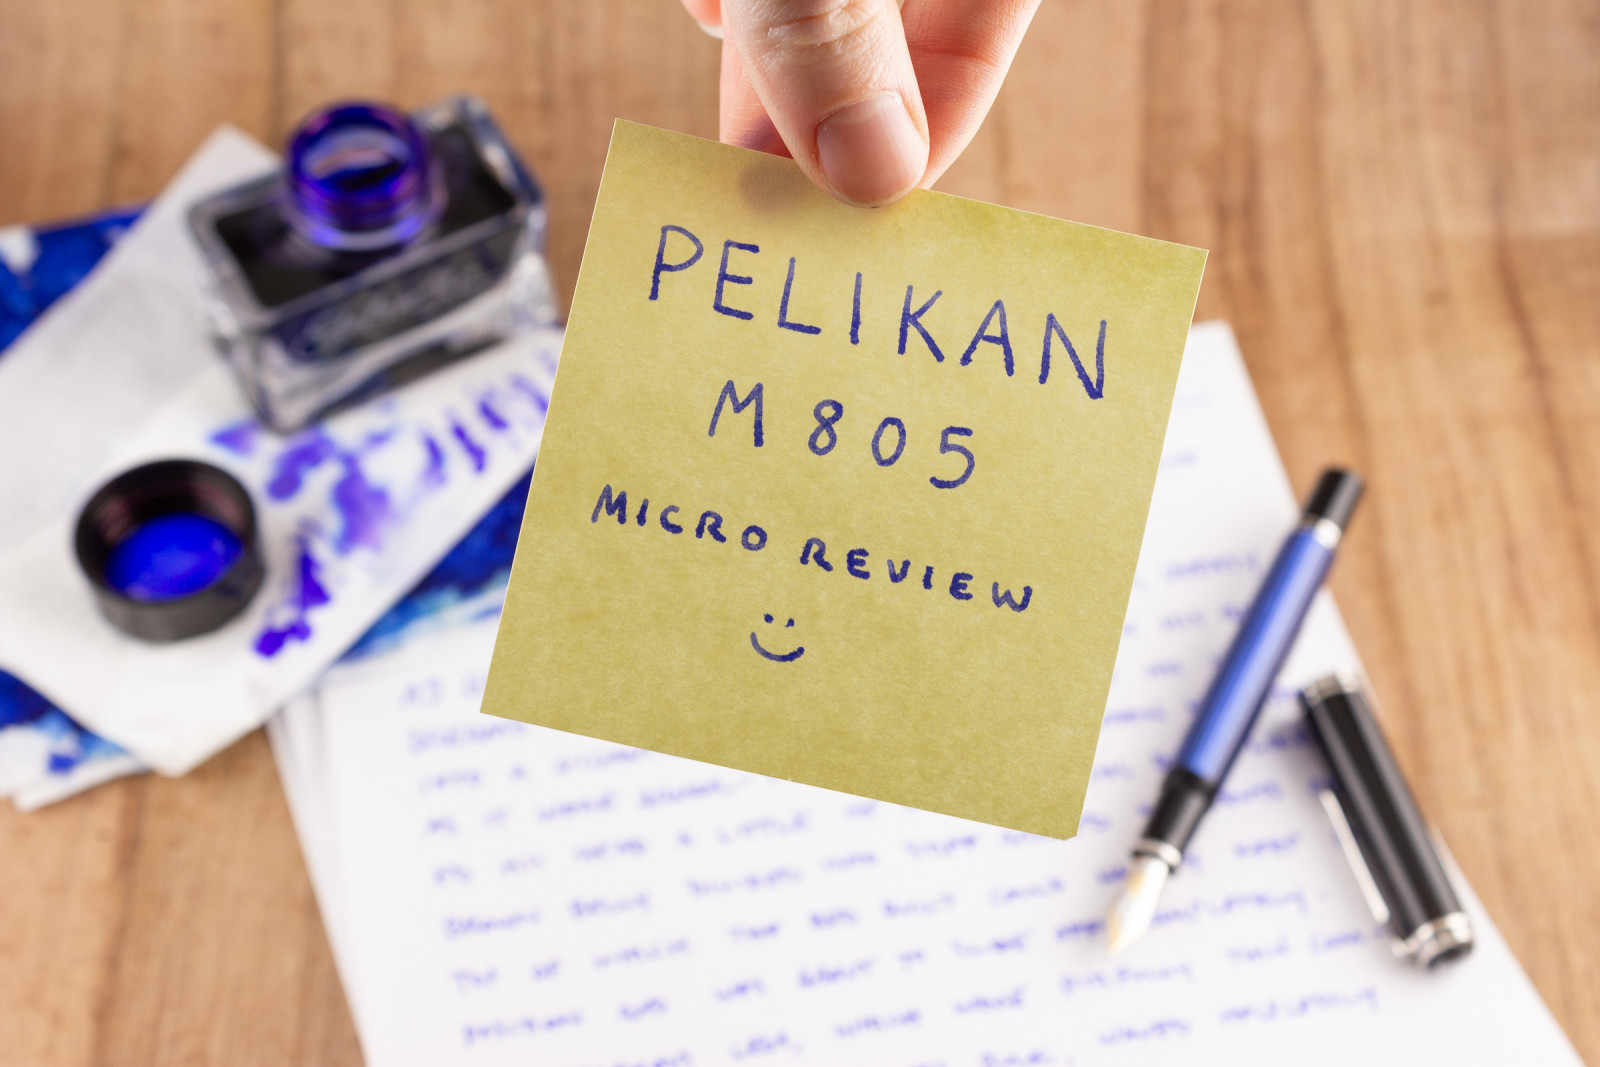 Pelikan M805 Blue Stripe Microreview intro